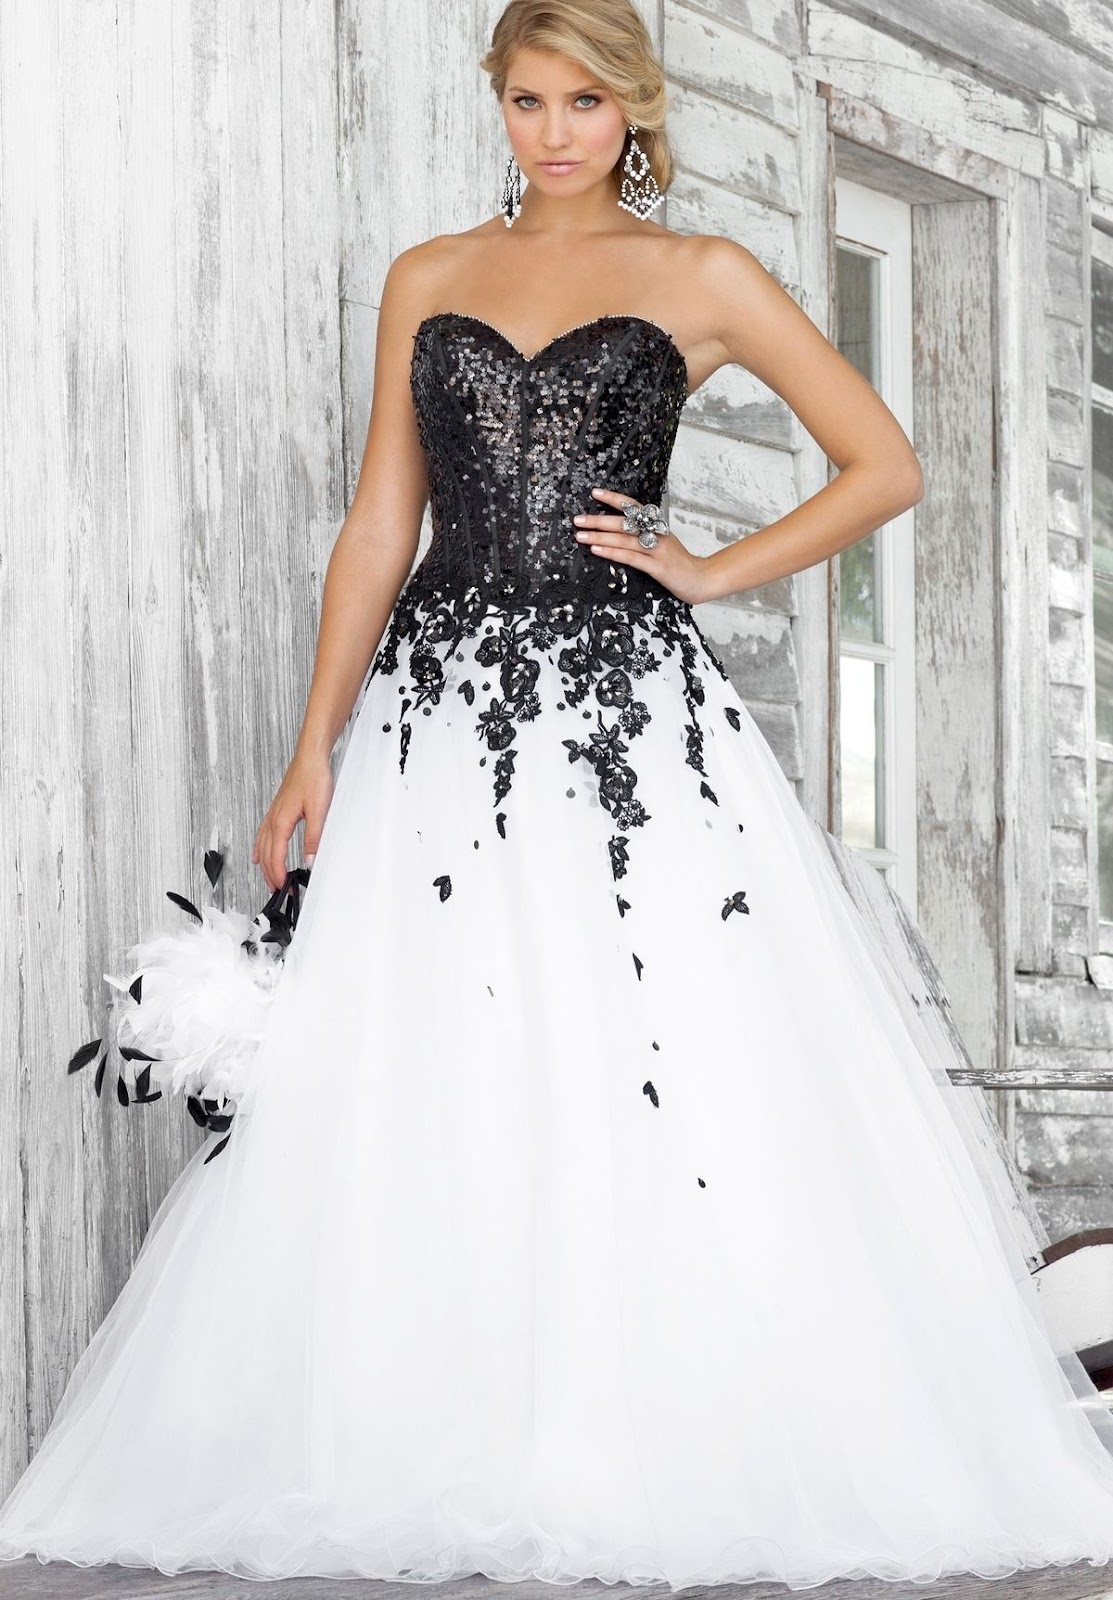 Black and White Ball Gown Prom Dresses